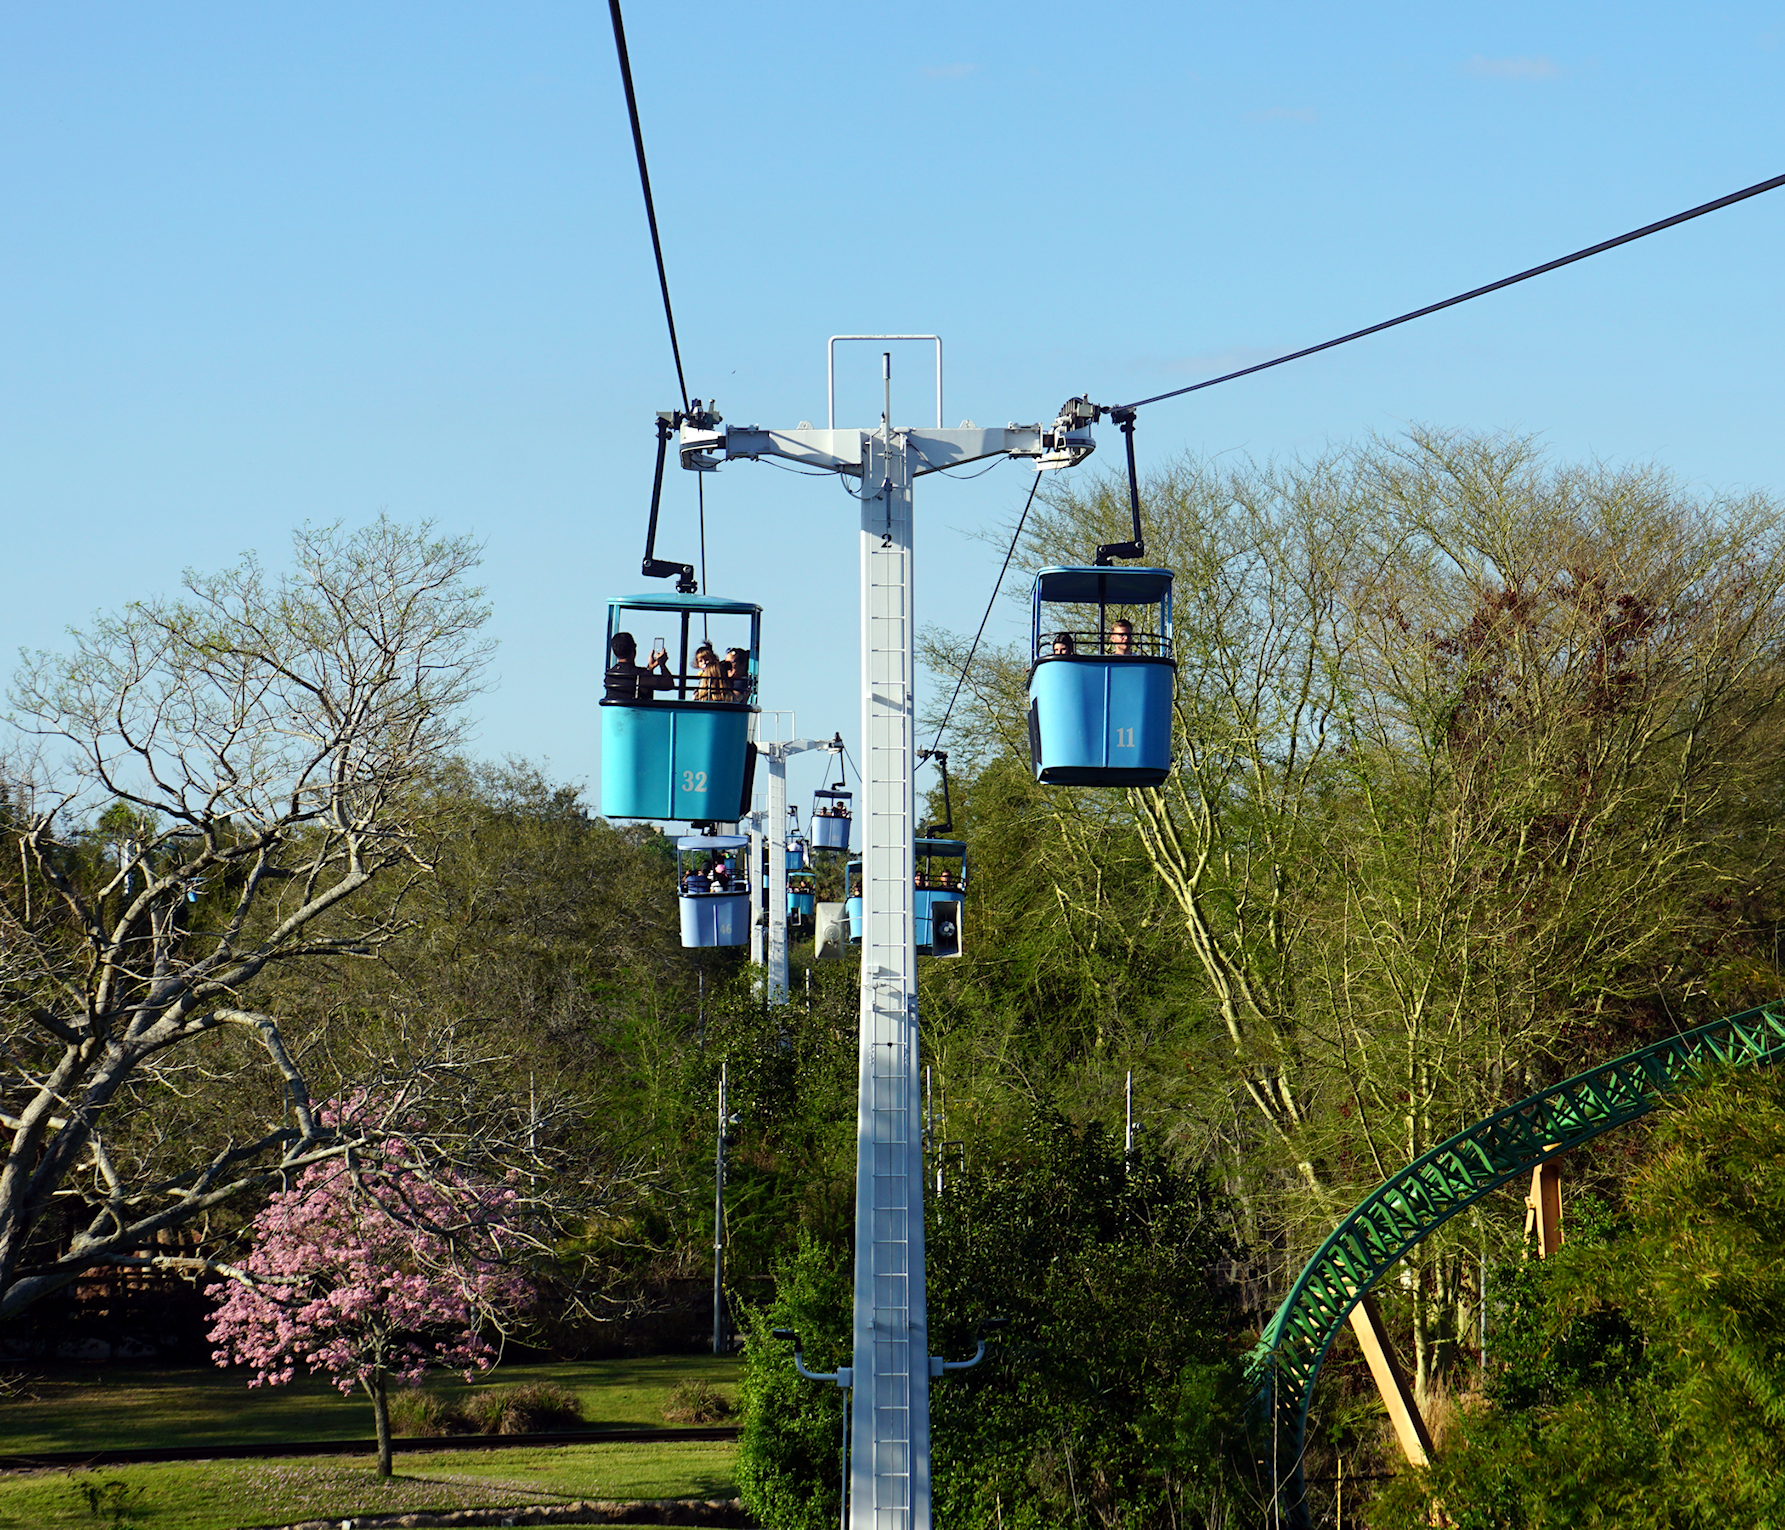 Sky Ride At Busch Gardens, Tampa, Florida. #rescue #animals #lilsusieq